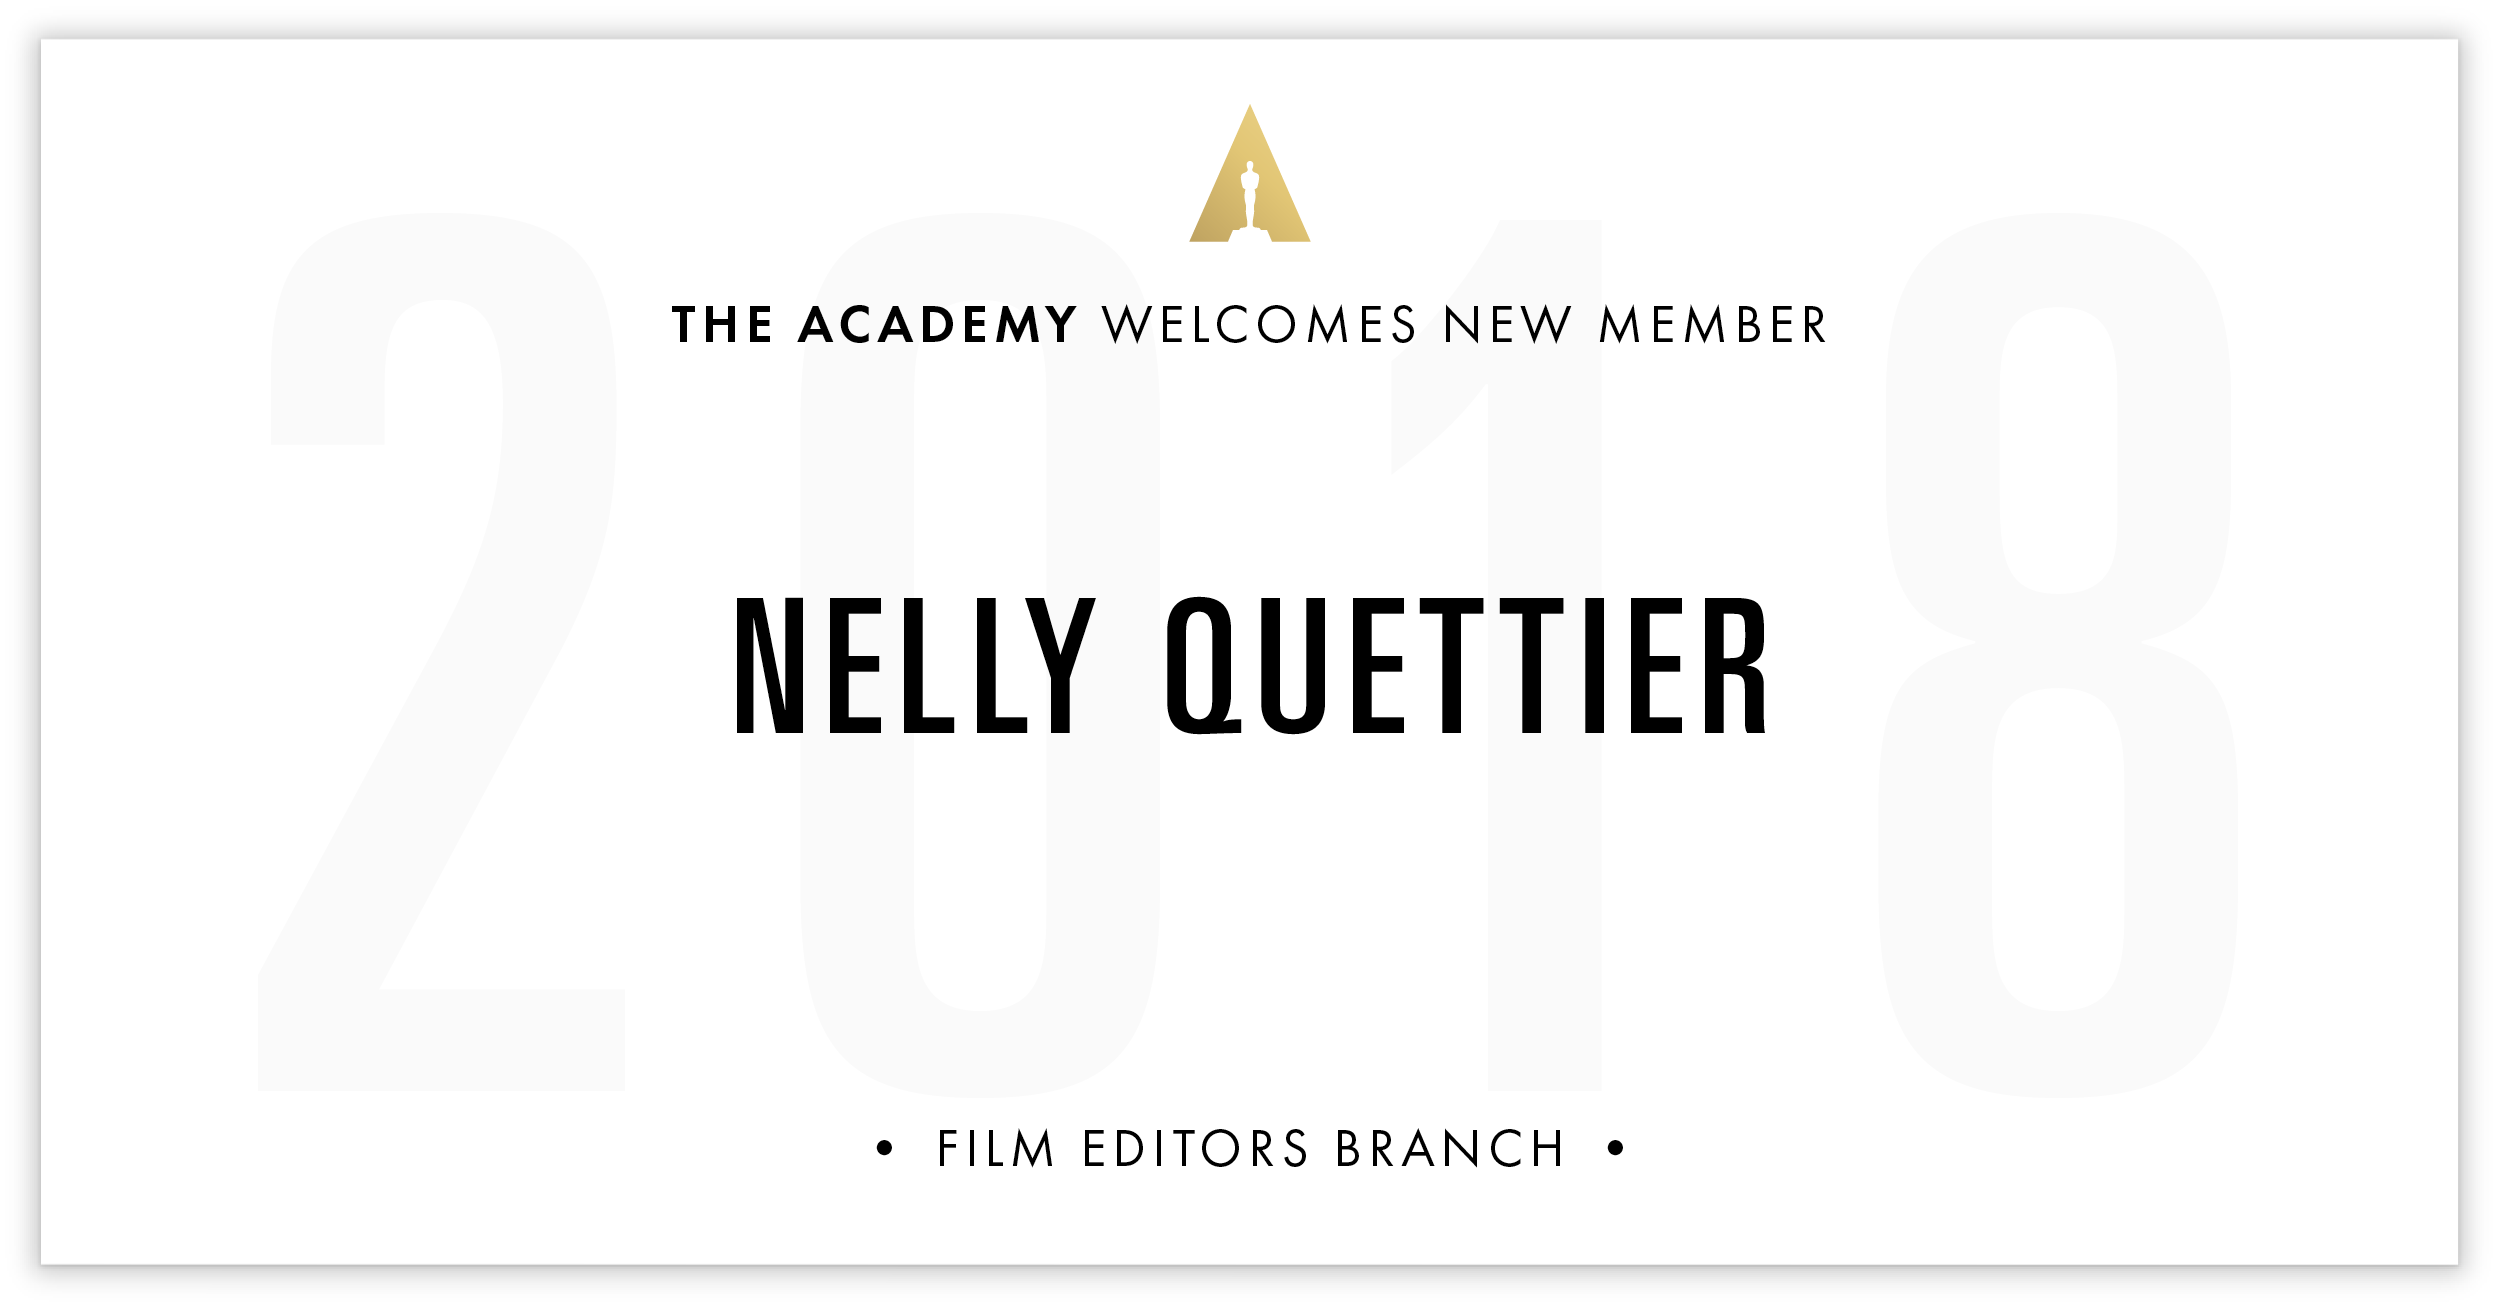 Nelly Quettier is invited!